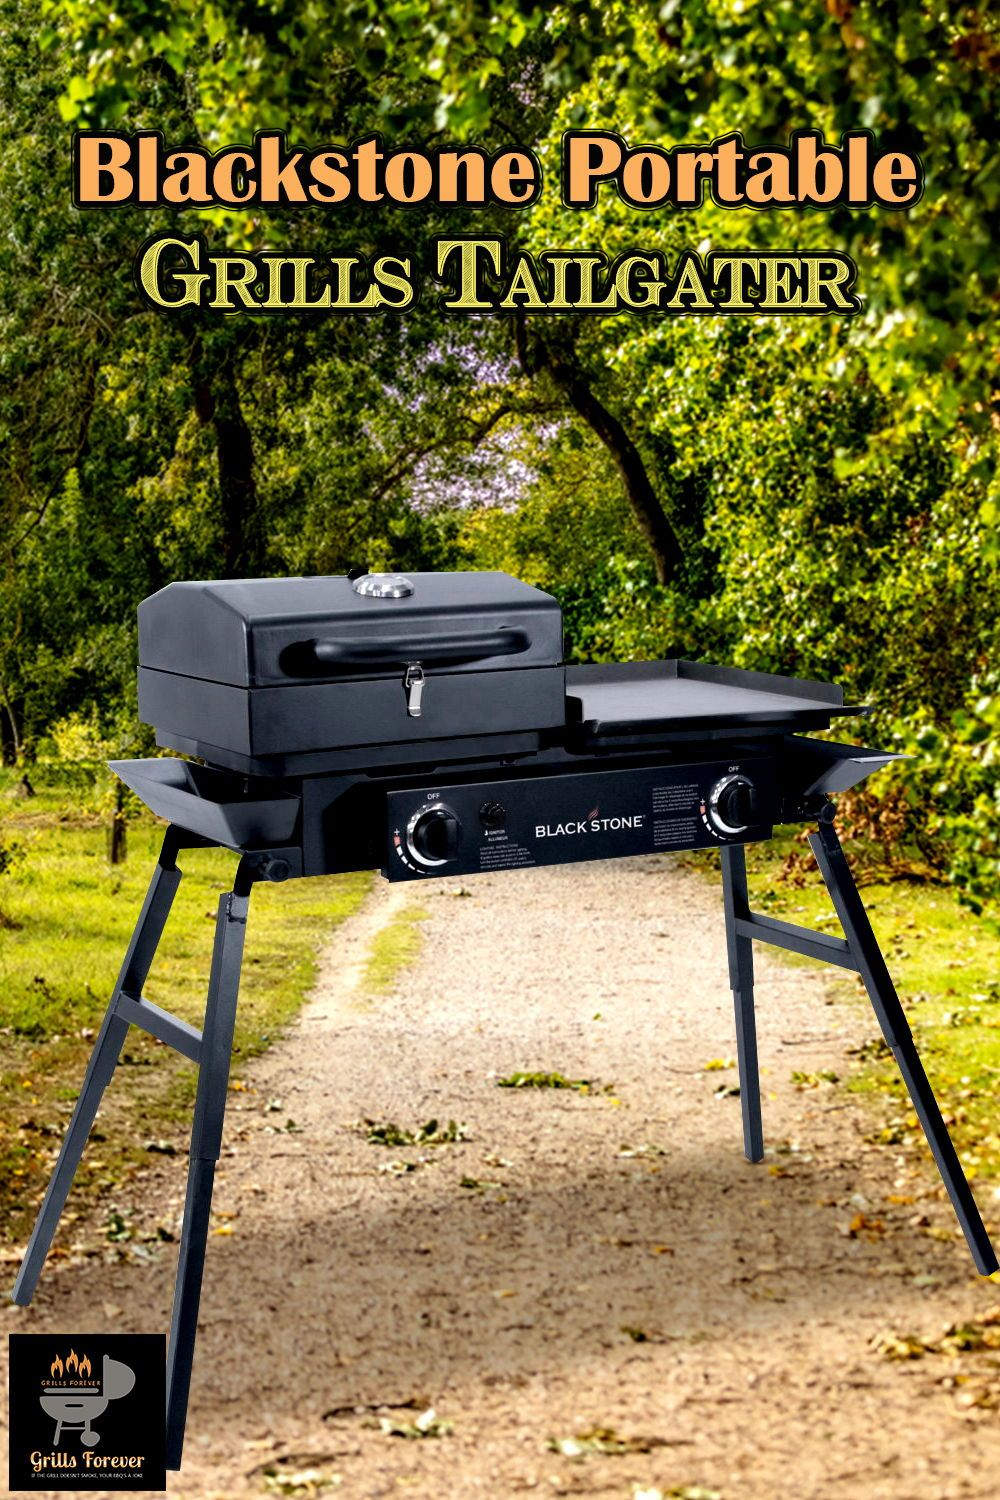 Blackstone Portable Grills Tailgater Best Flat Top Gas Used